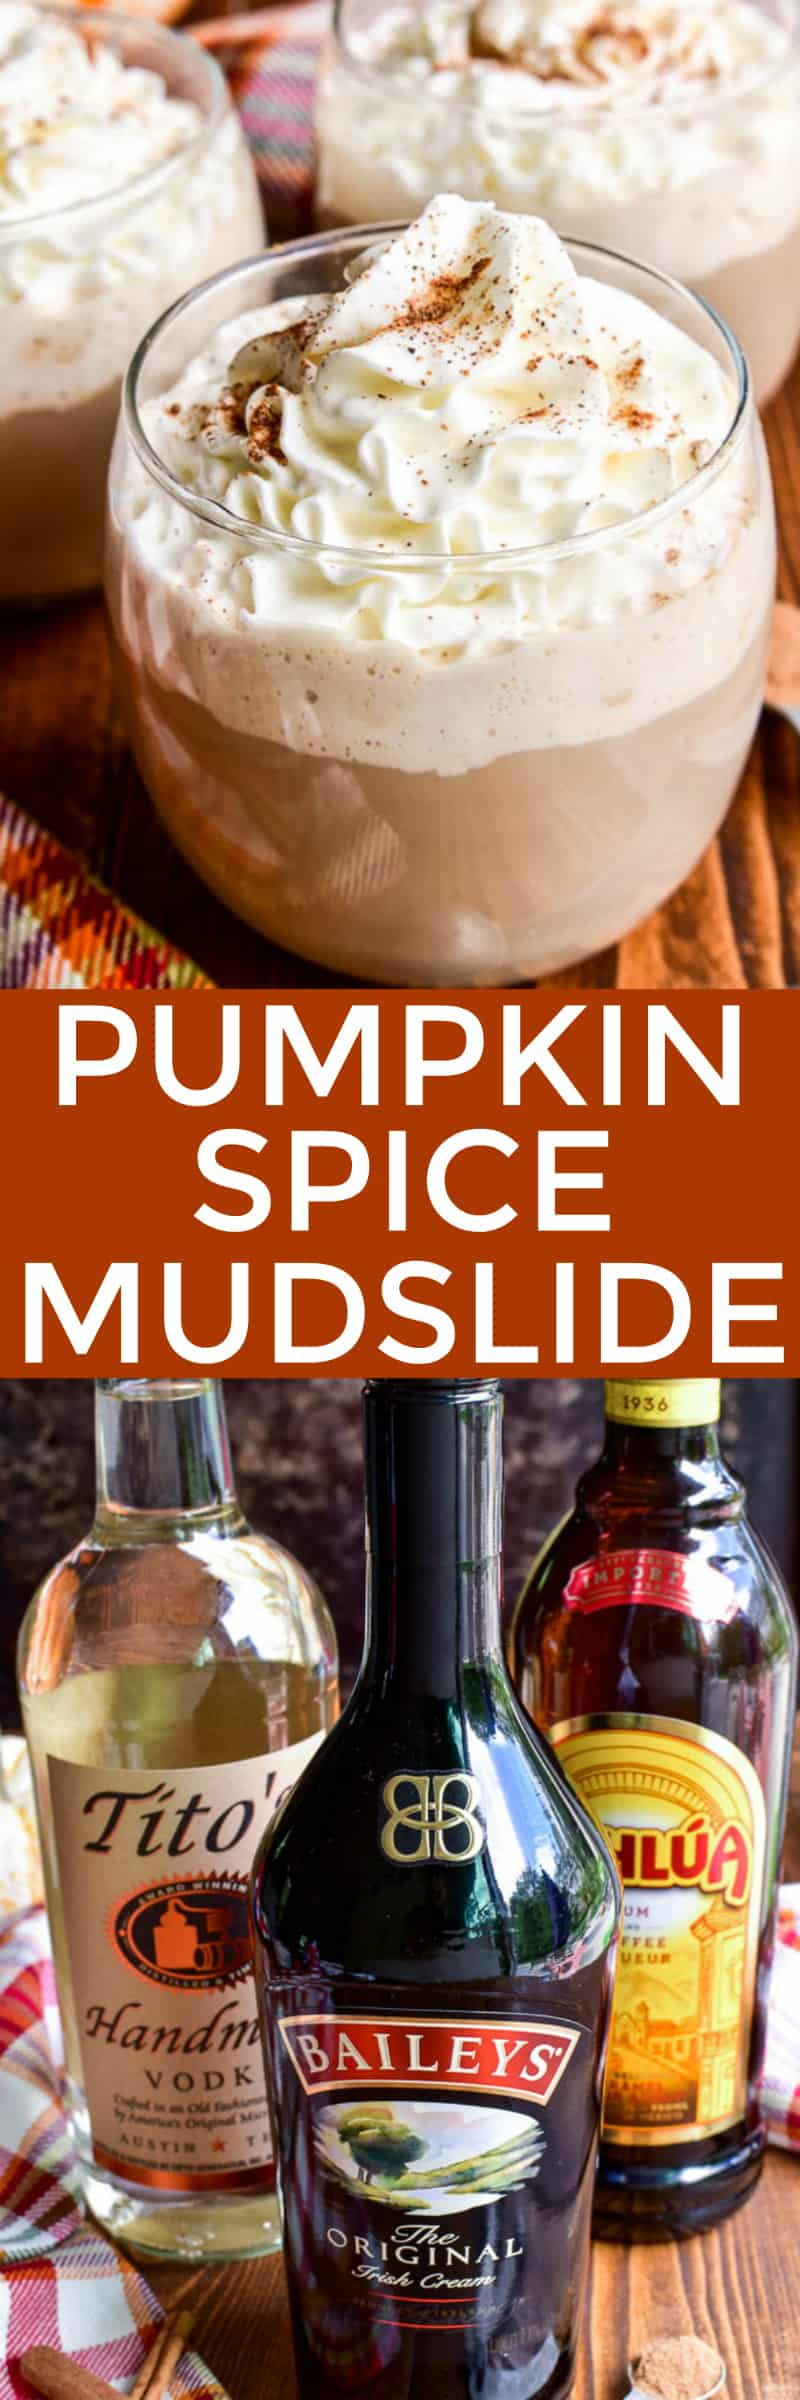 Fall is the time for all things pumpkin spice...and this Pumpkin Spice Mudslide is about to become your new favorite! This drink combines all the flavors of the classic mudslide cocktail with a pumpkin spice twist. Perfect for fall gatherings or cozy nights by the fire, if you love mudslides you'll fall in love with this fall version!